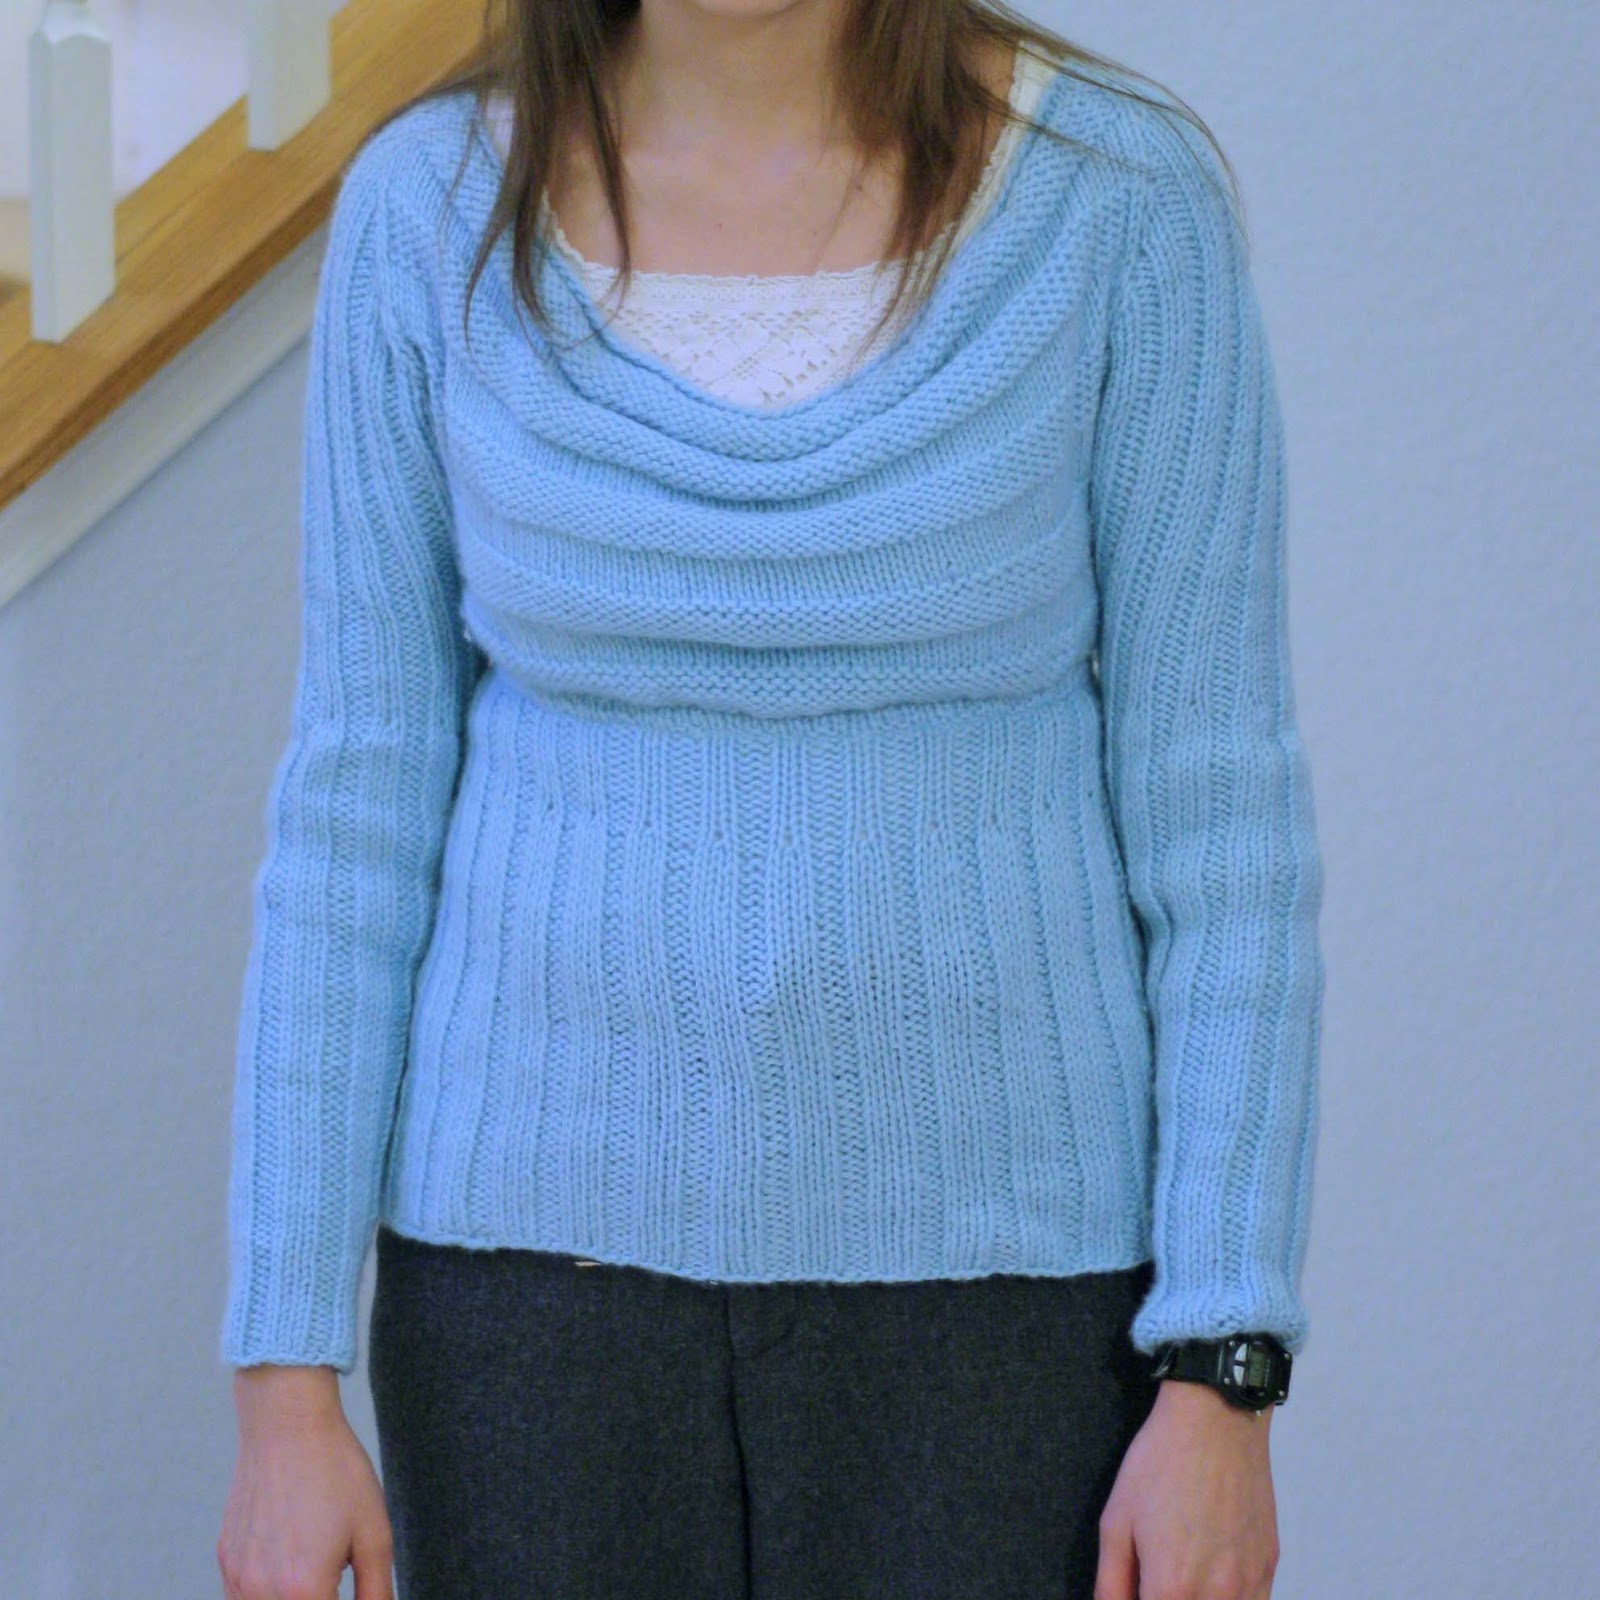 Knitted scoop neck sweater - Melly Sews